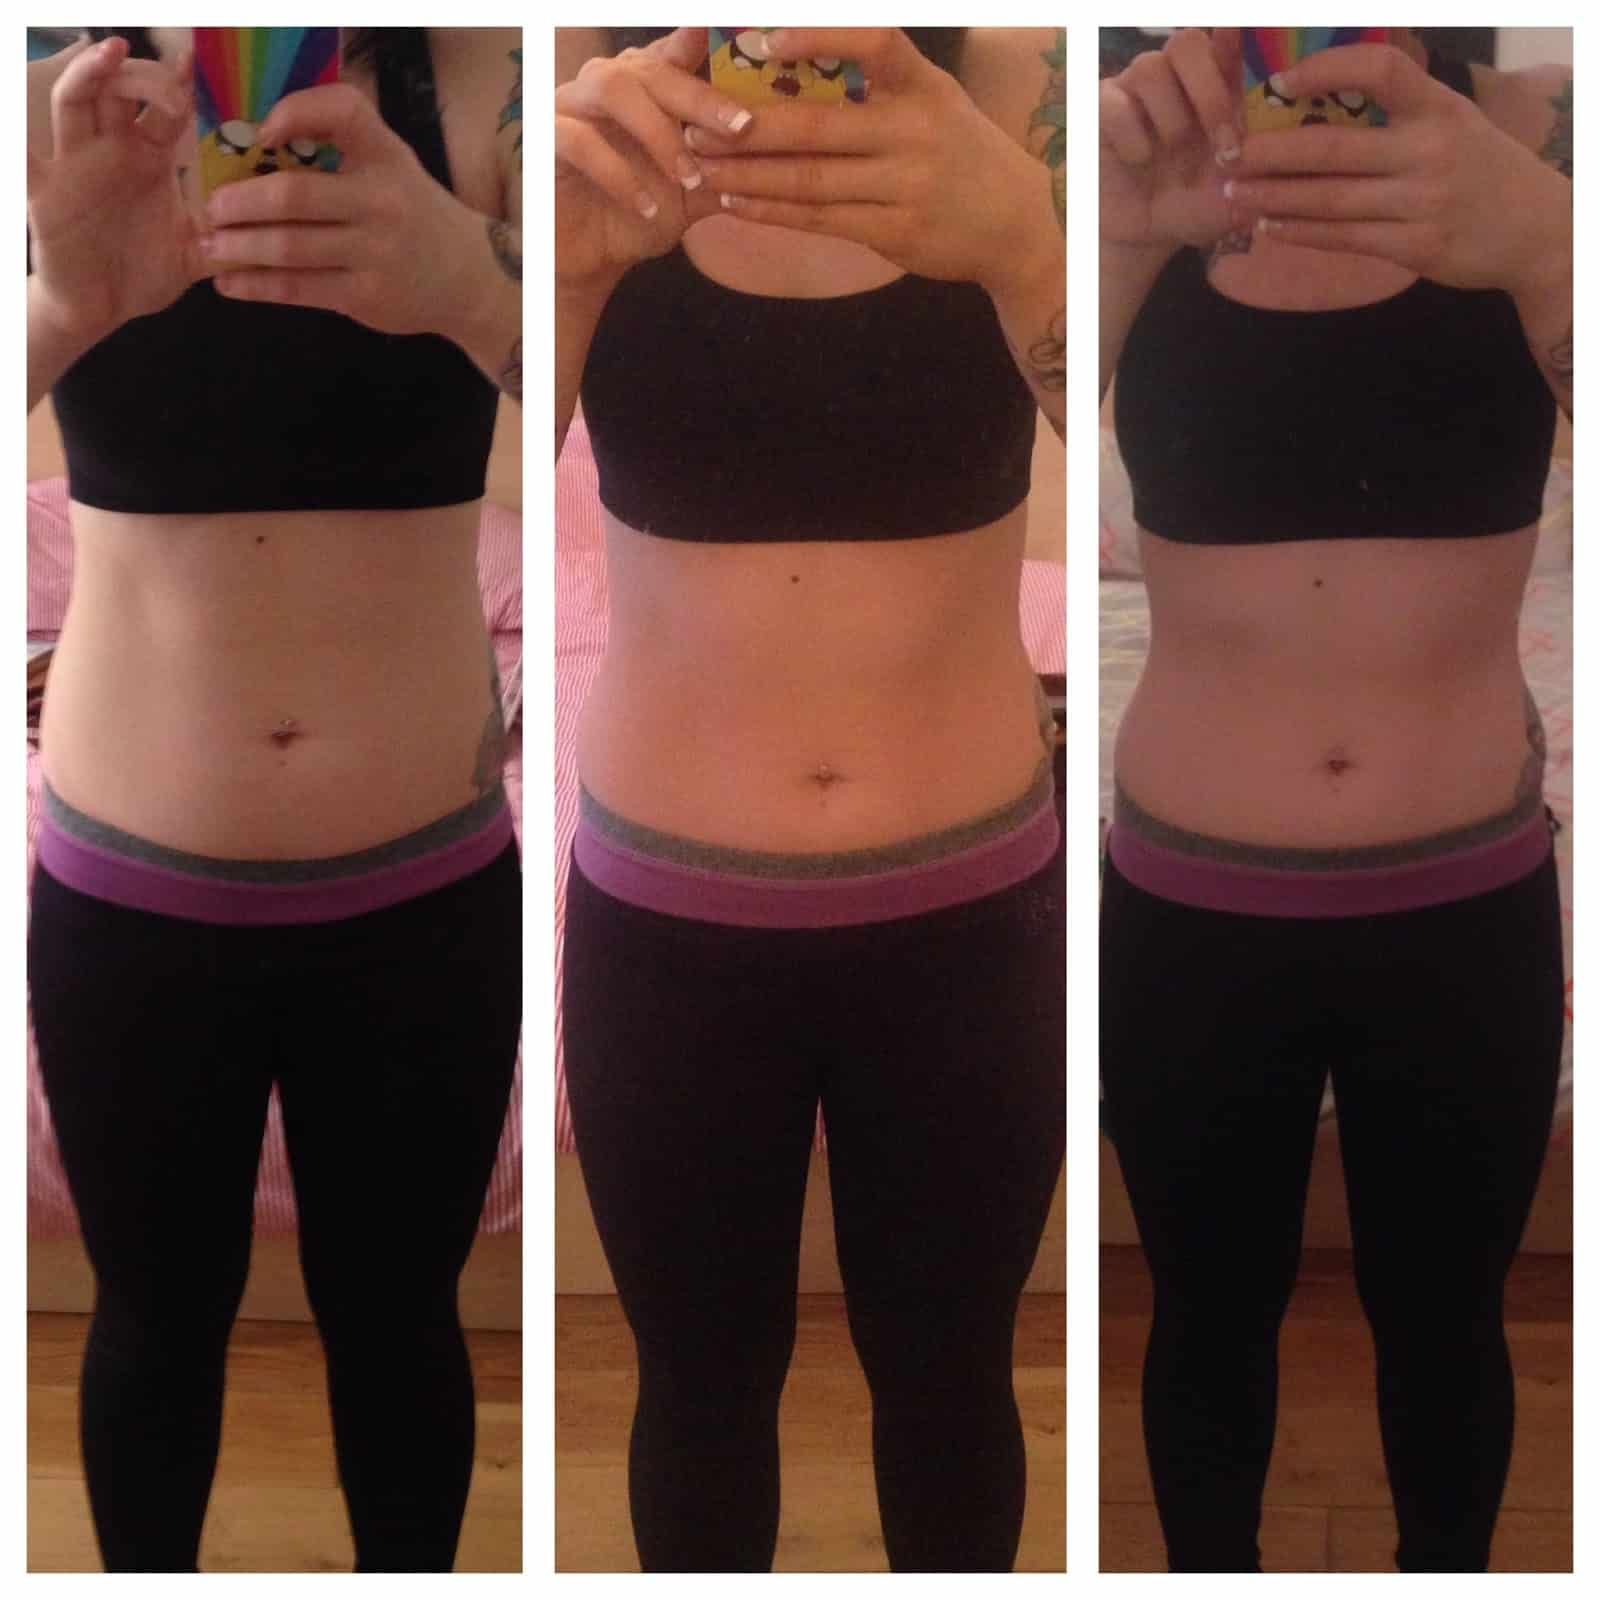 096e7ec1ec Waist Training Before   After Examples - Me and My Waist